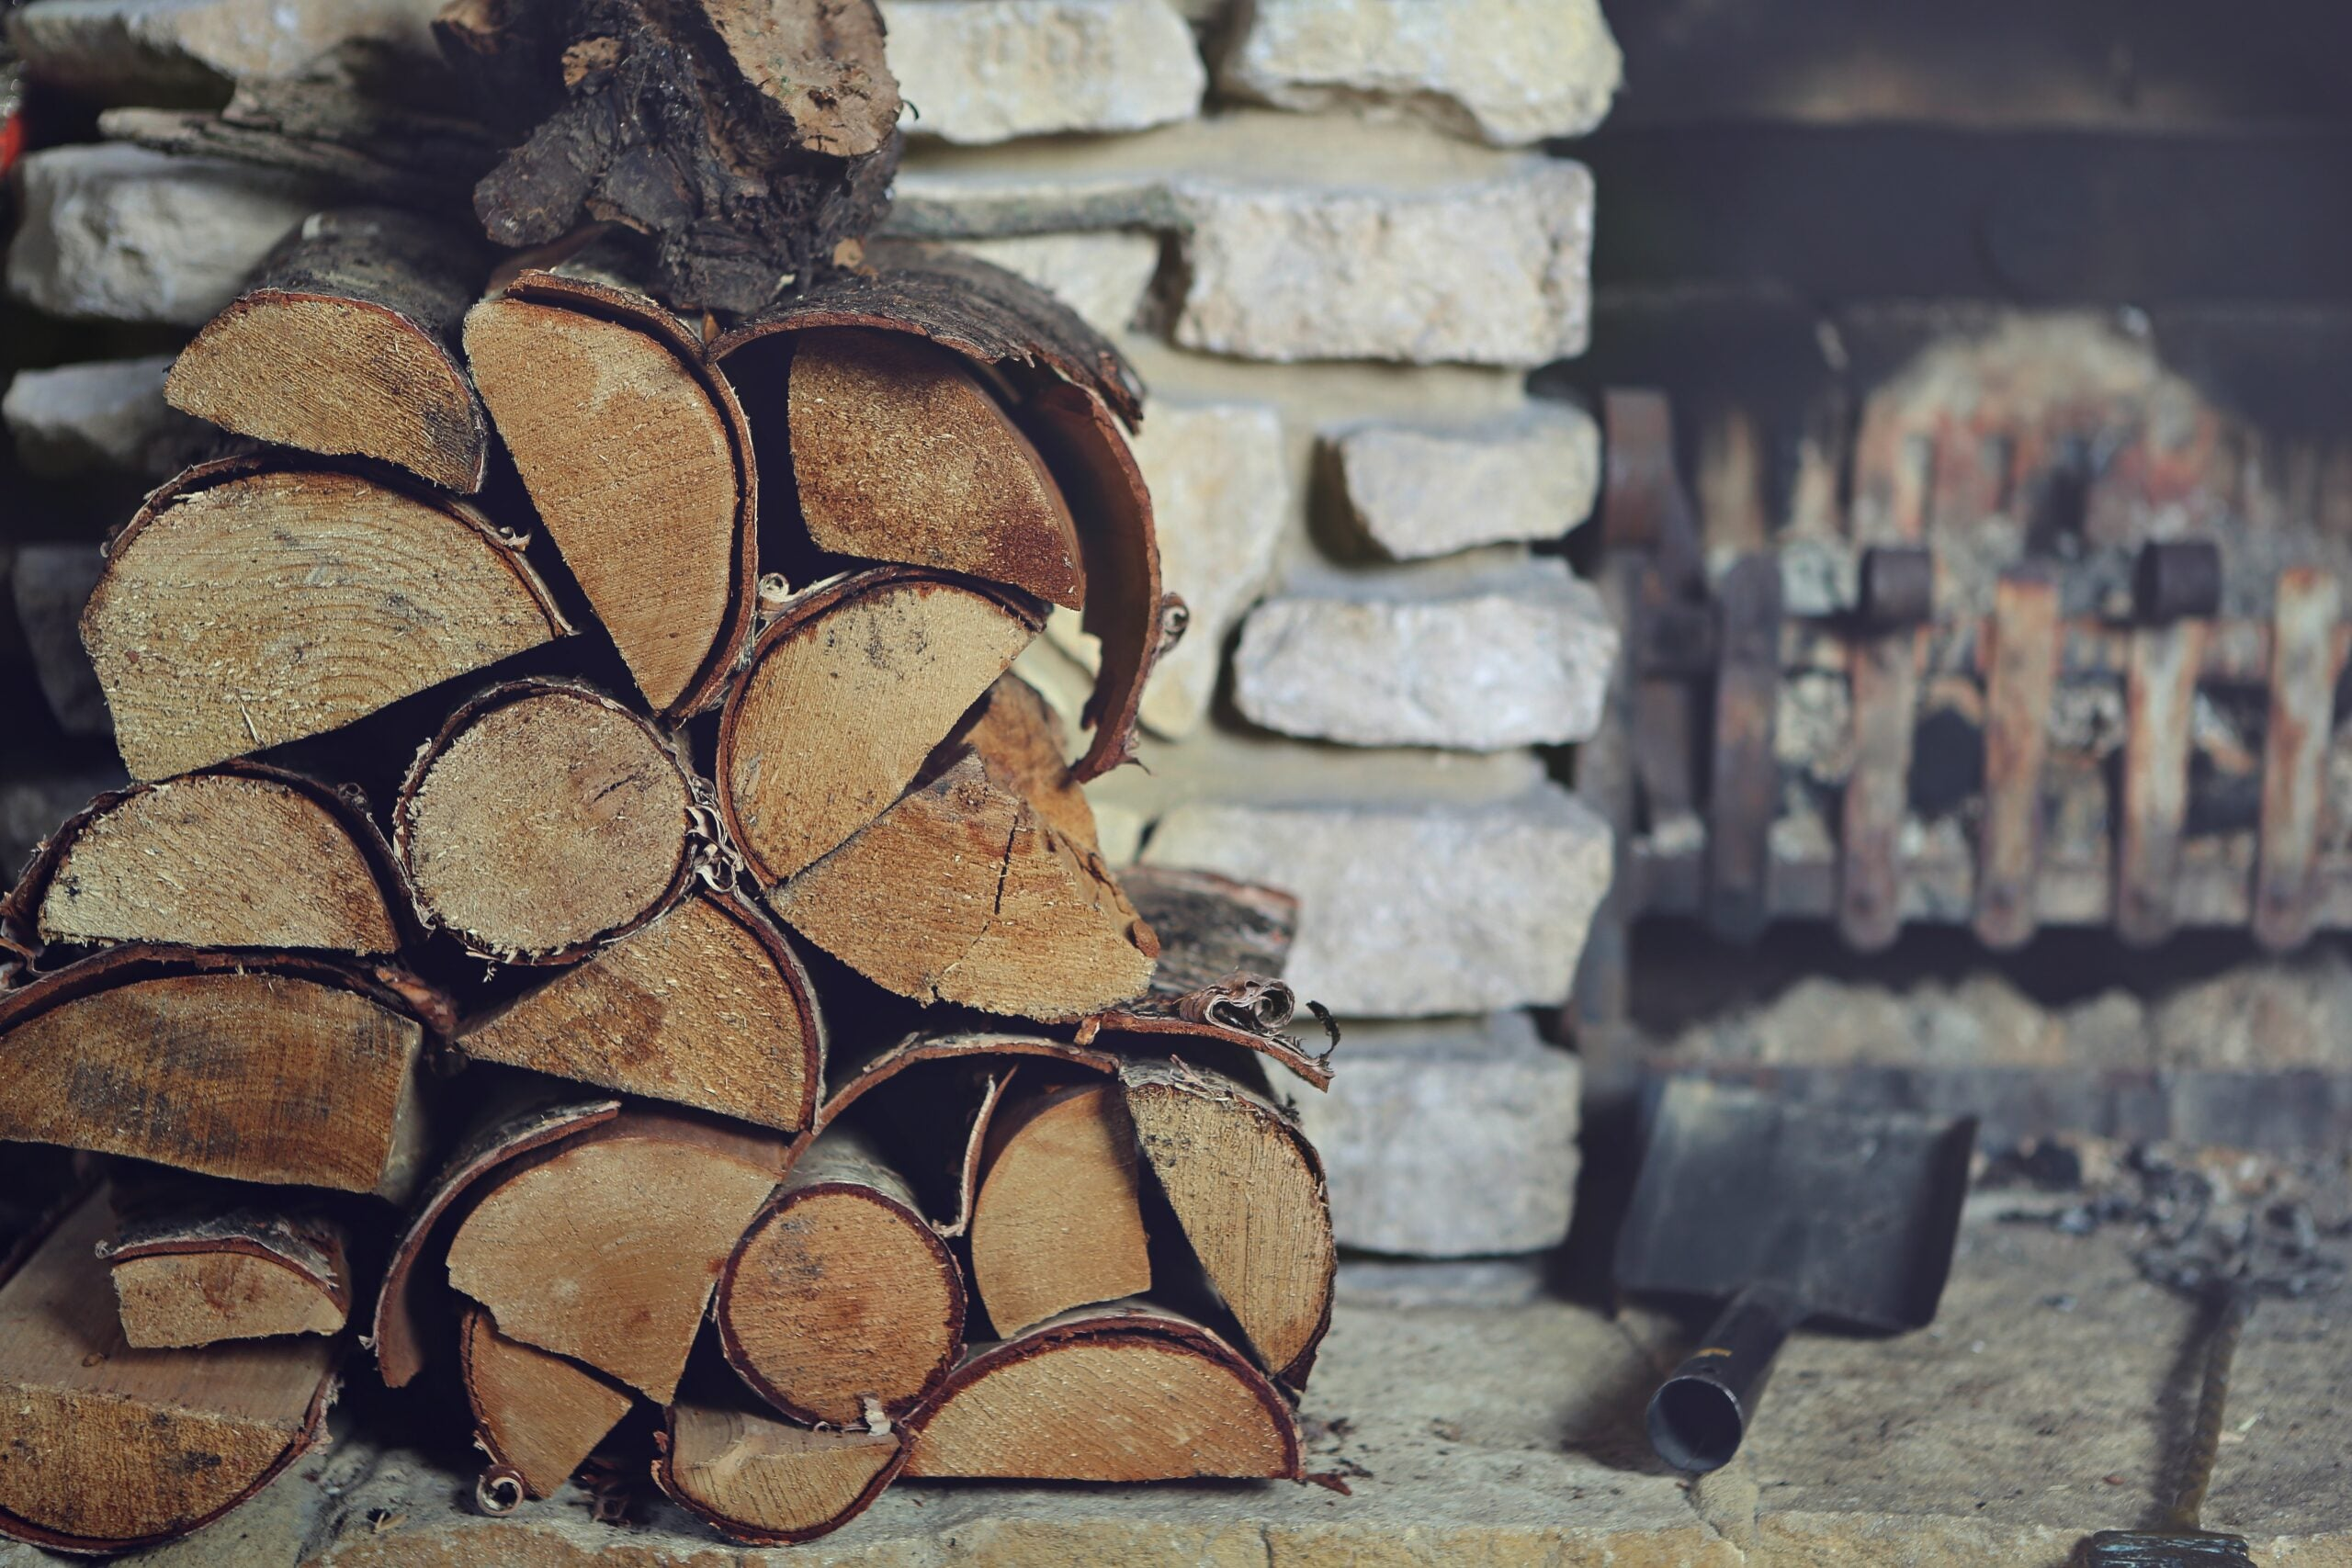 Three Things to Look For When Choosing a Firewood Rack